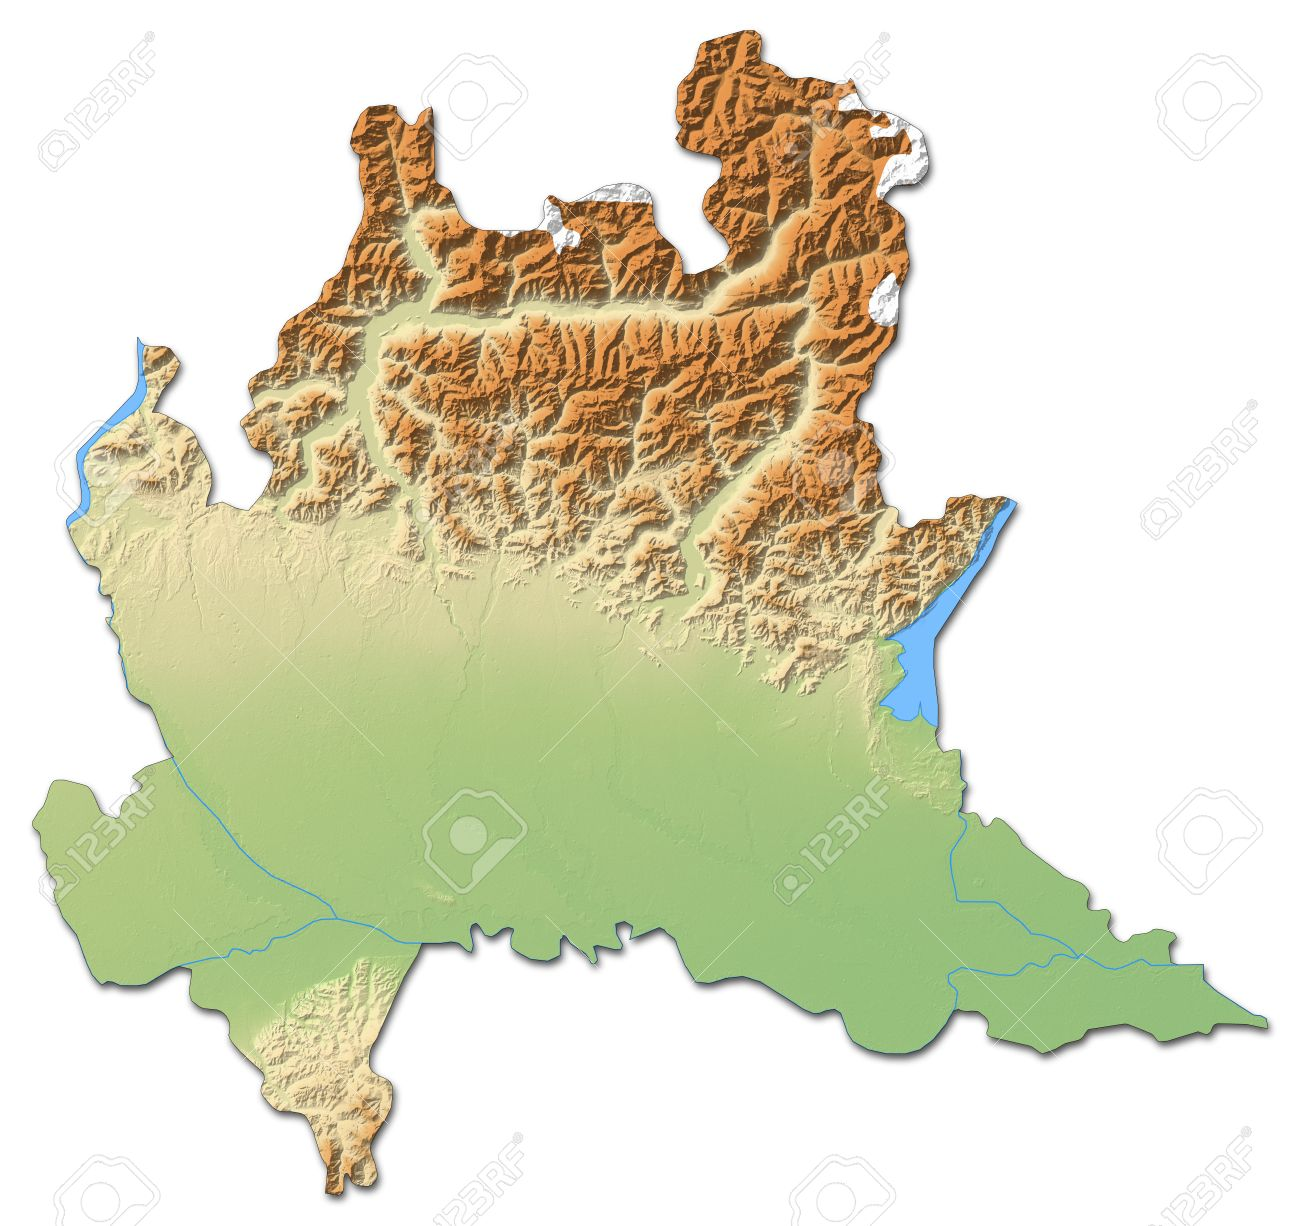 Relief Map Of Lombardy, A Province Of Italy, With Shaded Relief ...